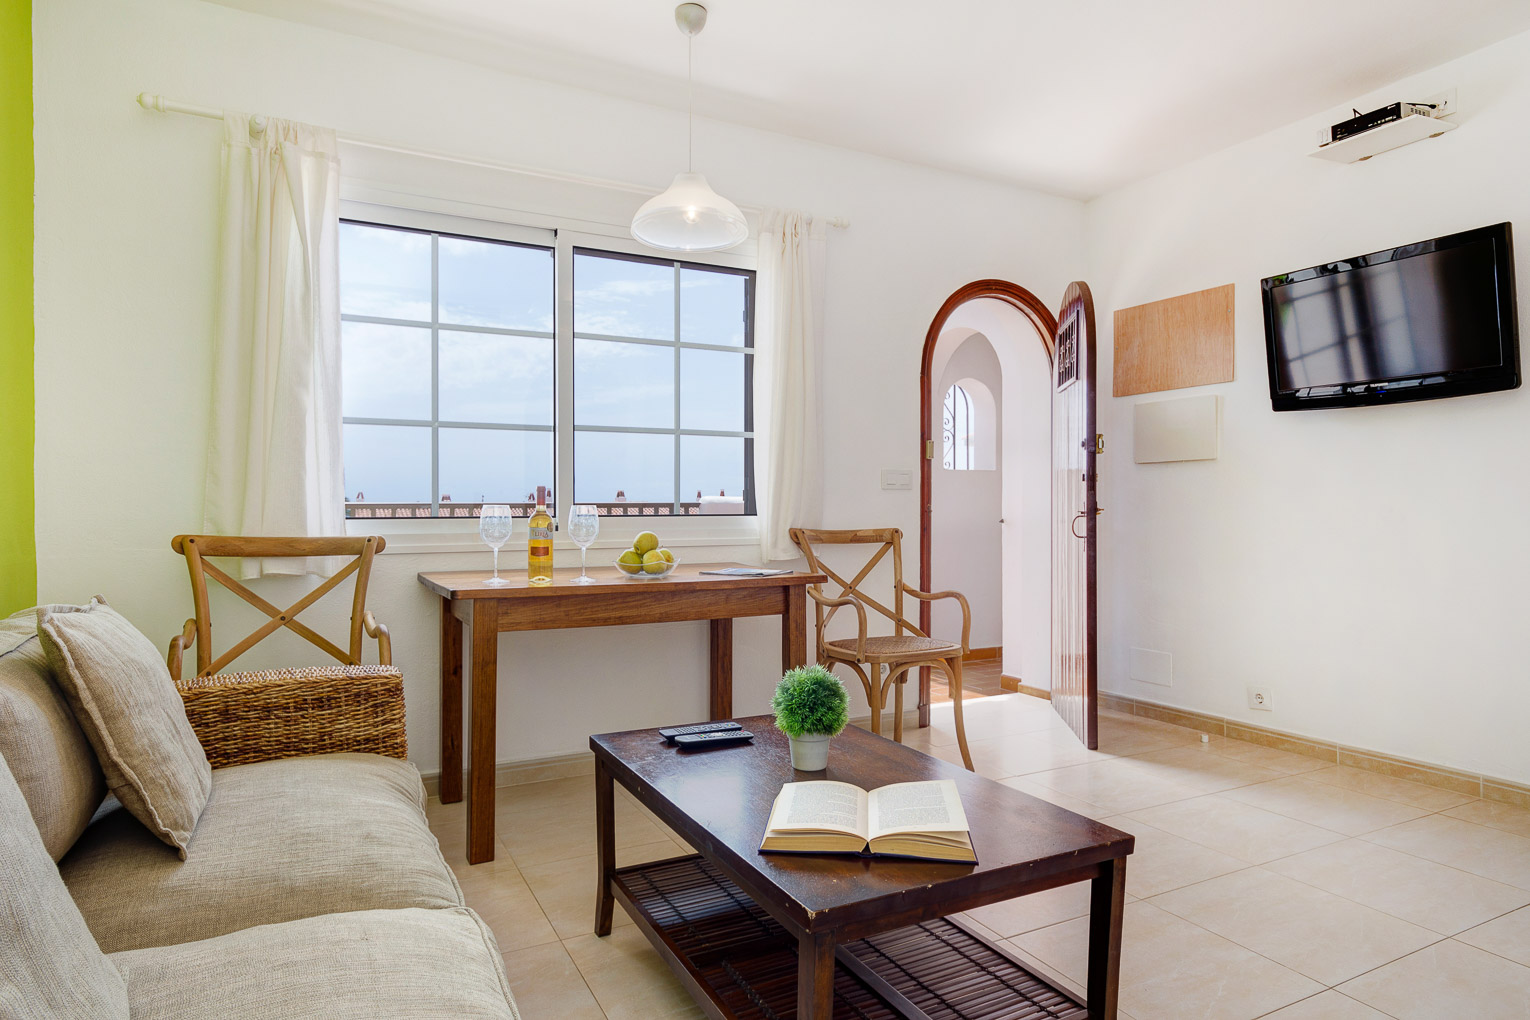 Son Bou Playa Apartments (2 bedroom) Picture 12